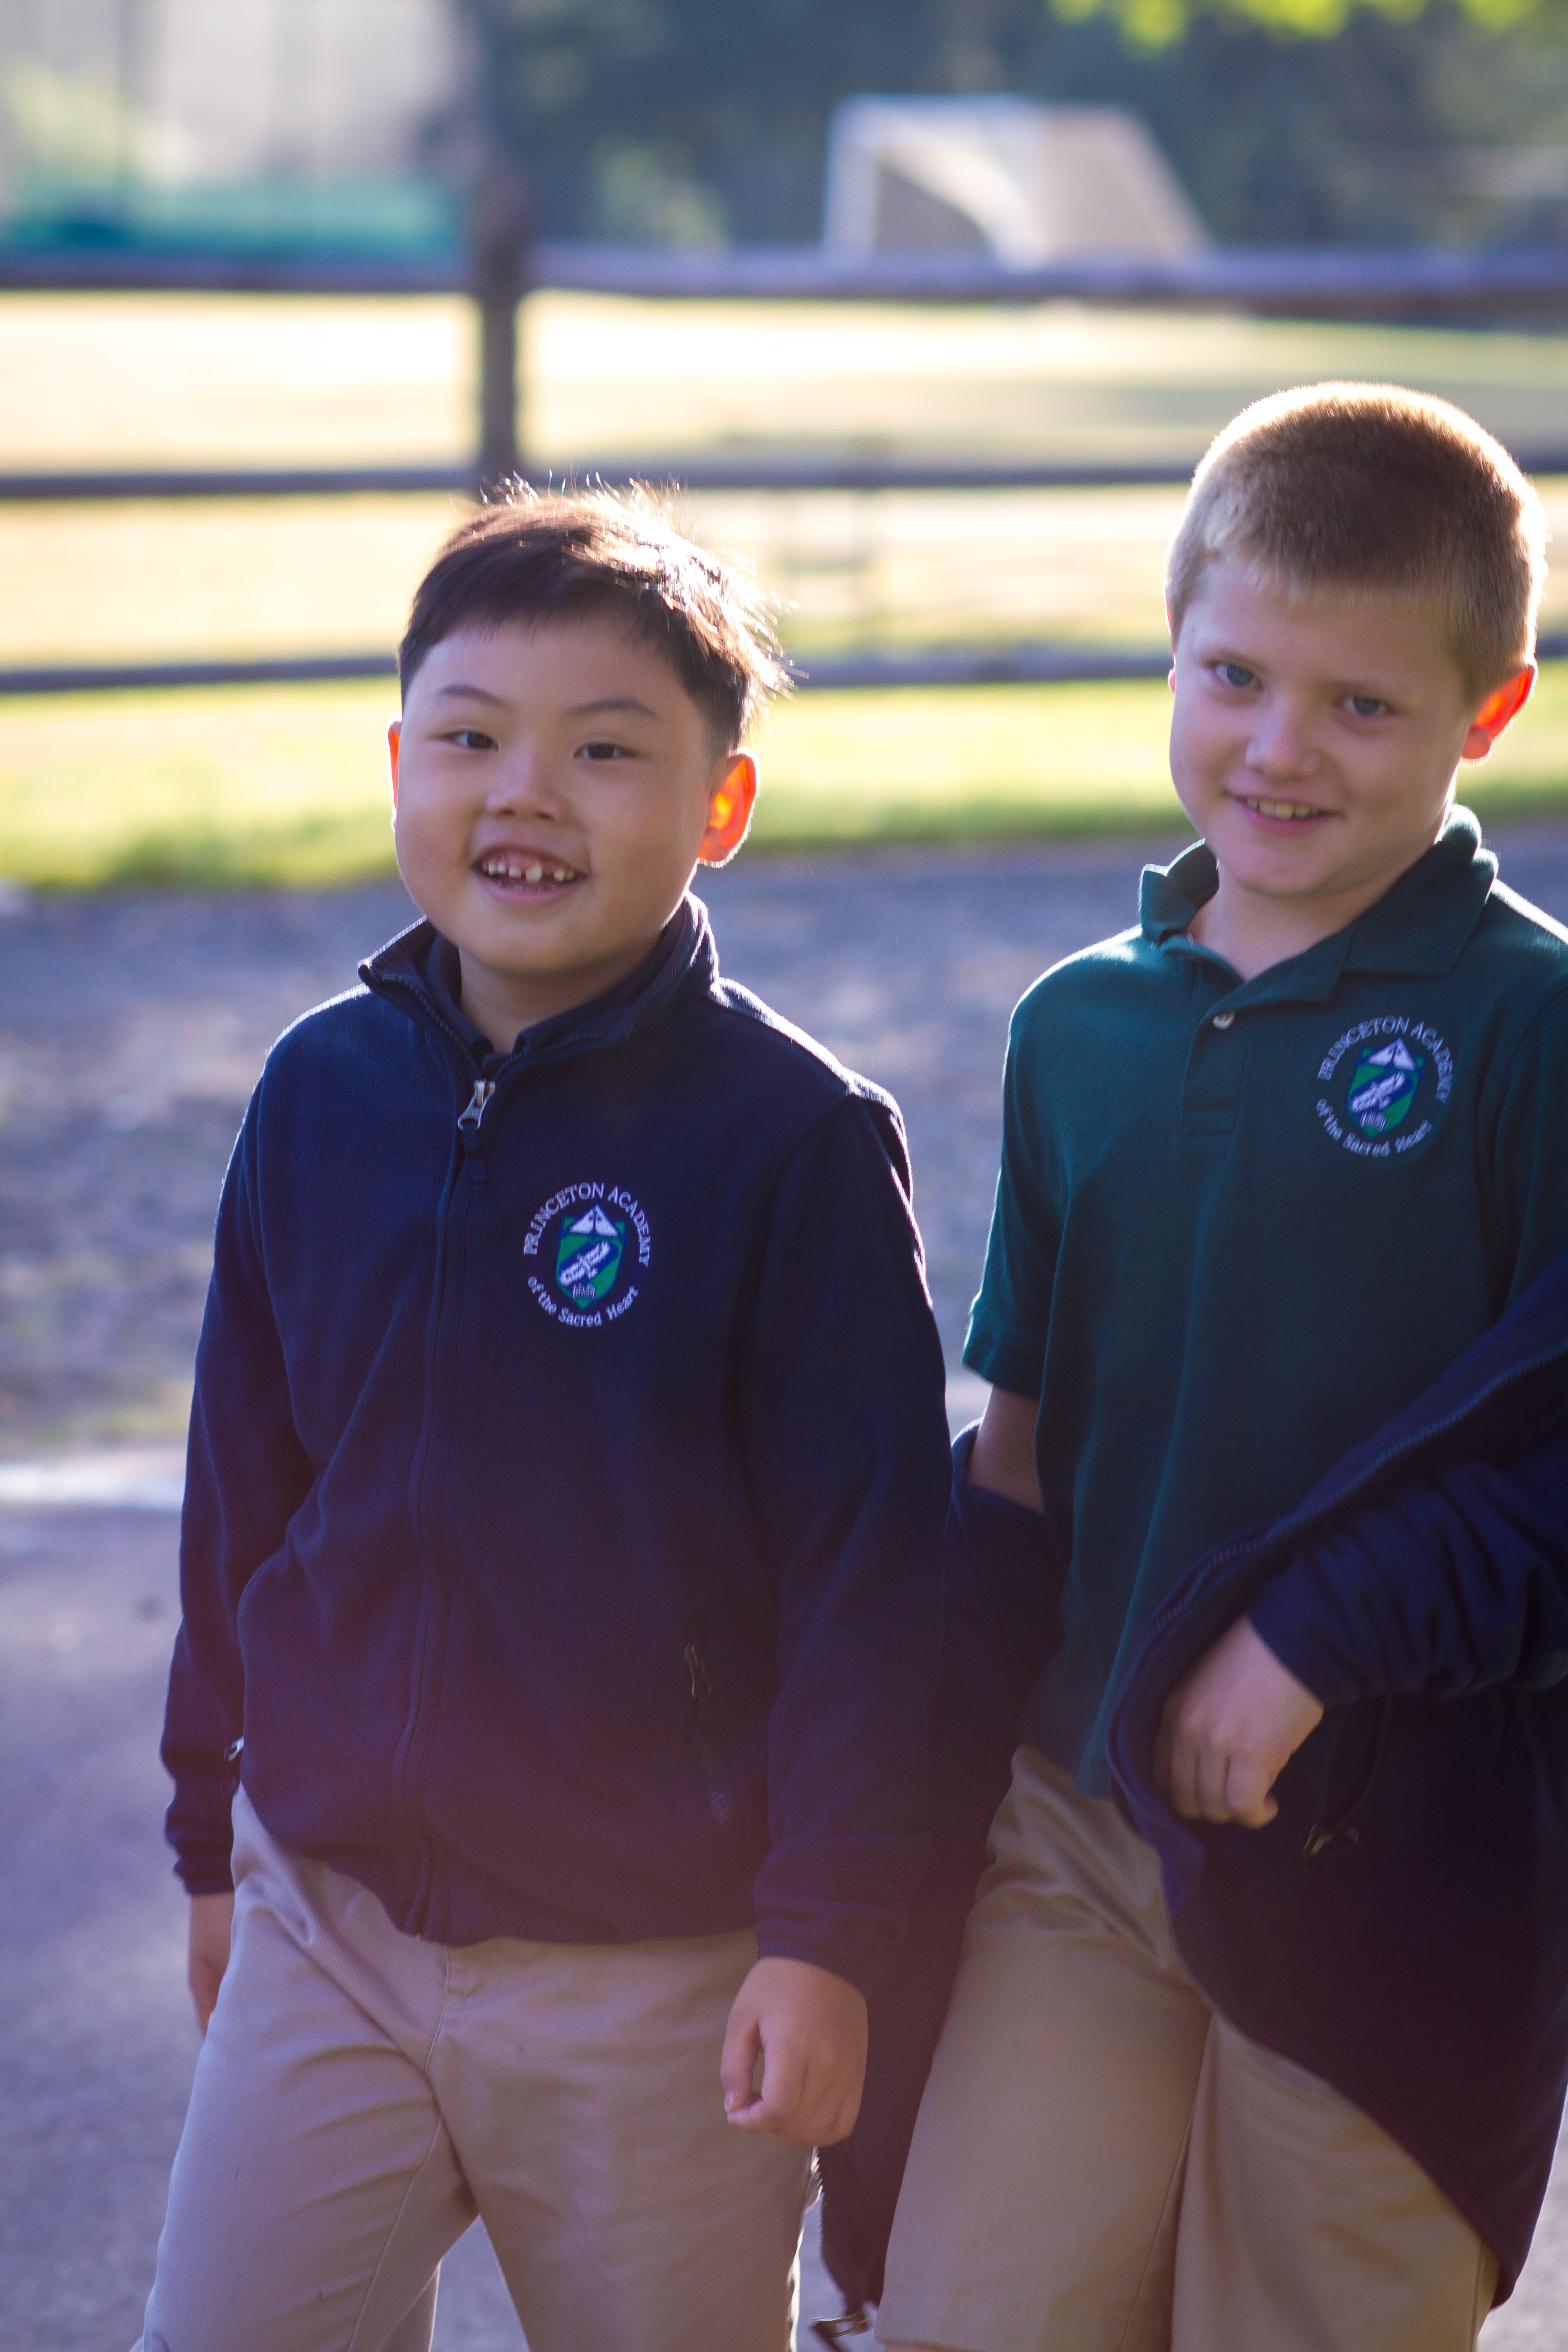 We're proud to provide the best academic preparation for boys in Princeton NJ